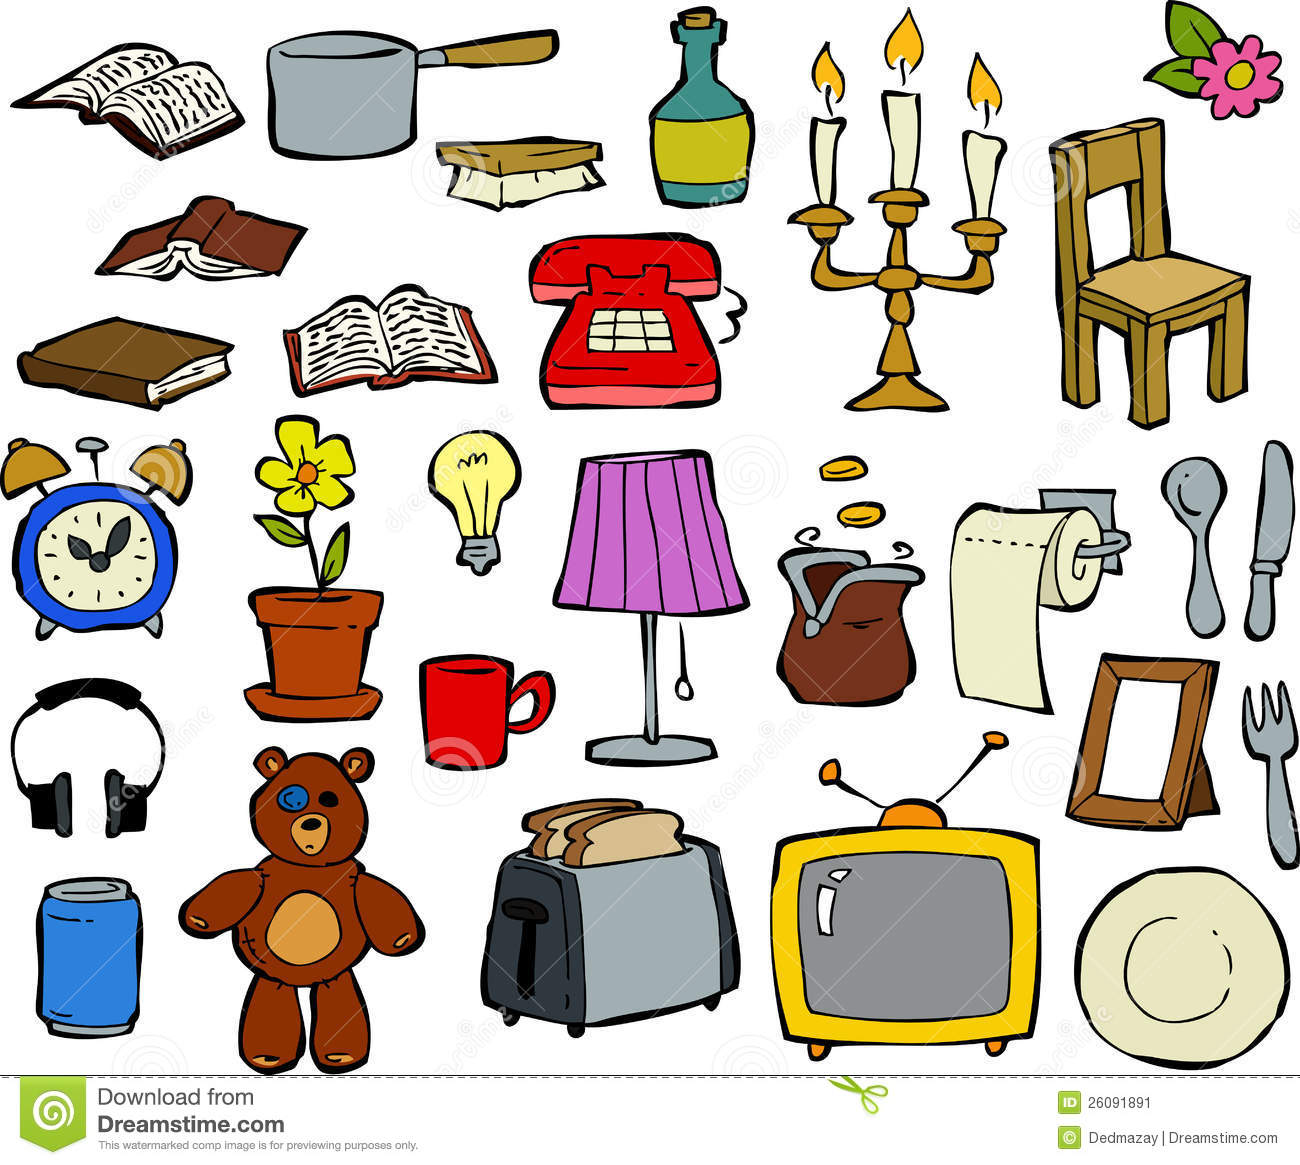 Clip Art Of Home Items Clipart - Clipart Kid